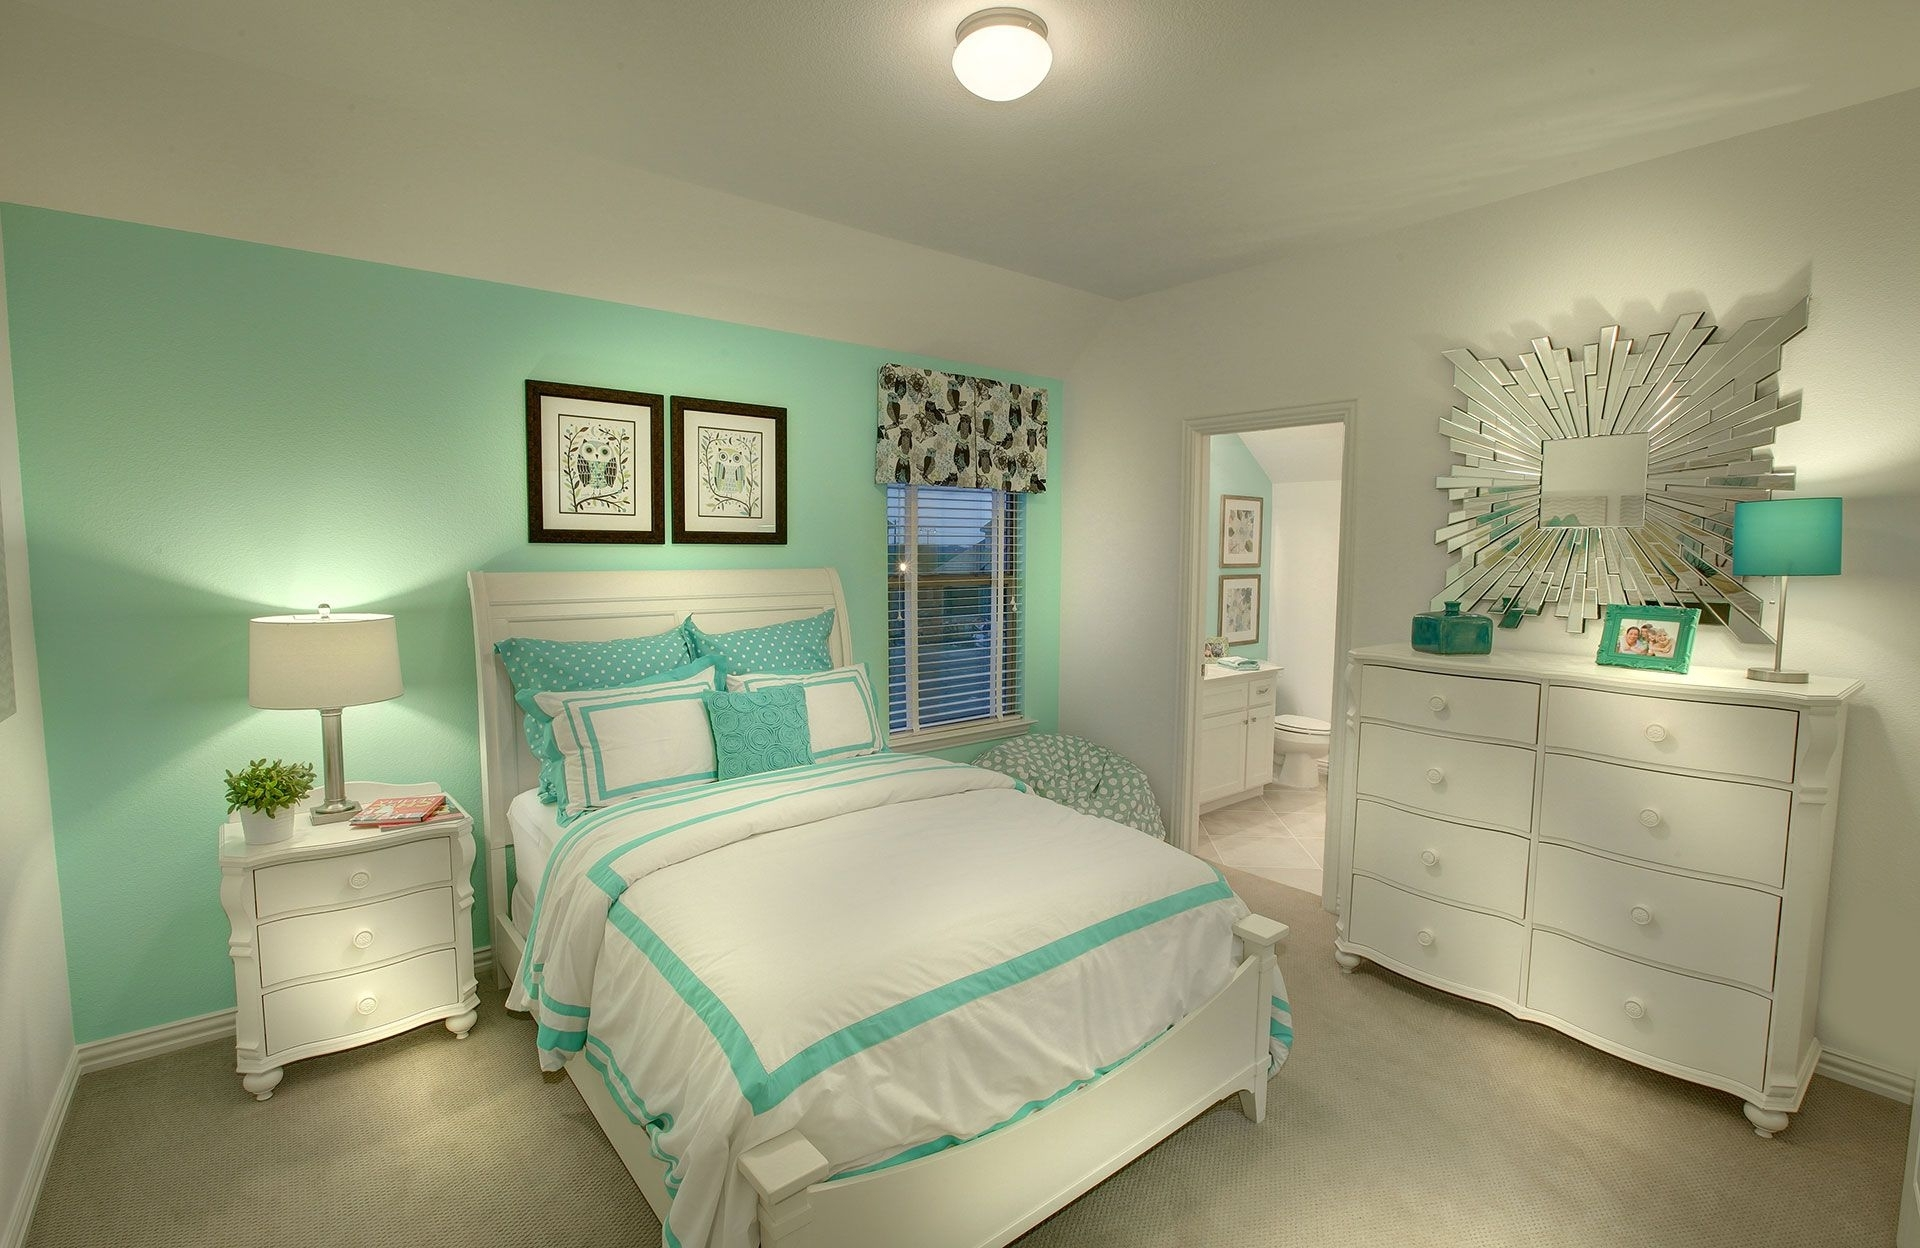 Bedroom Mint Green Bedroom Luxury Bedroom Design Grey And Seafoam In Current Green Room Wall Accents (View 2 of 15)